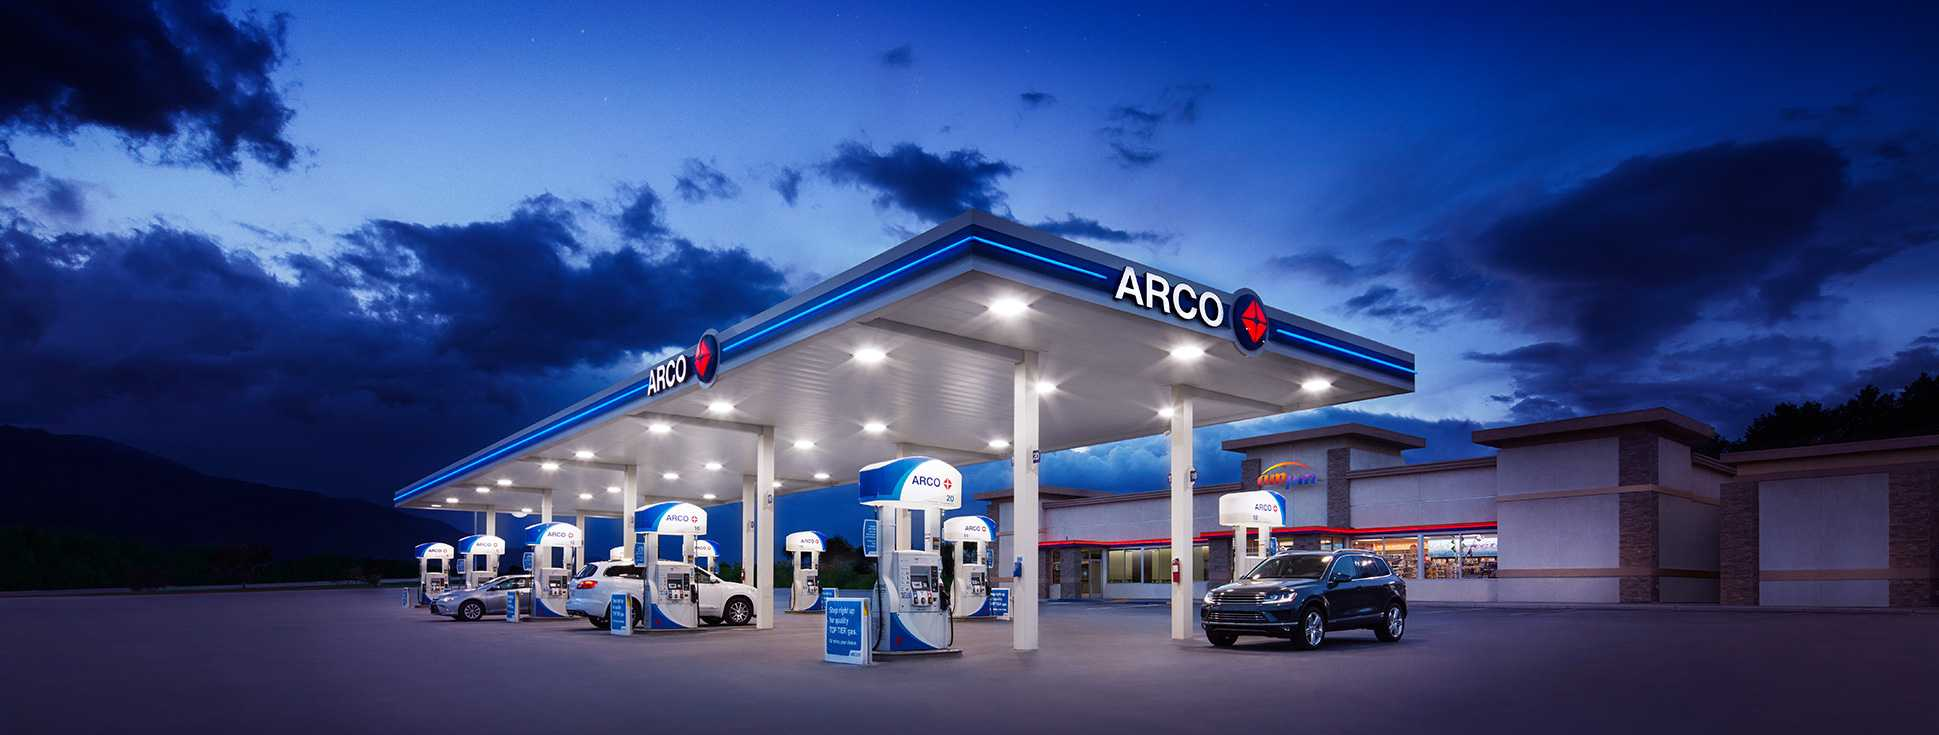 arco gas station near me, arco near me